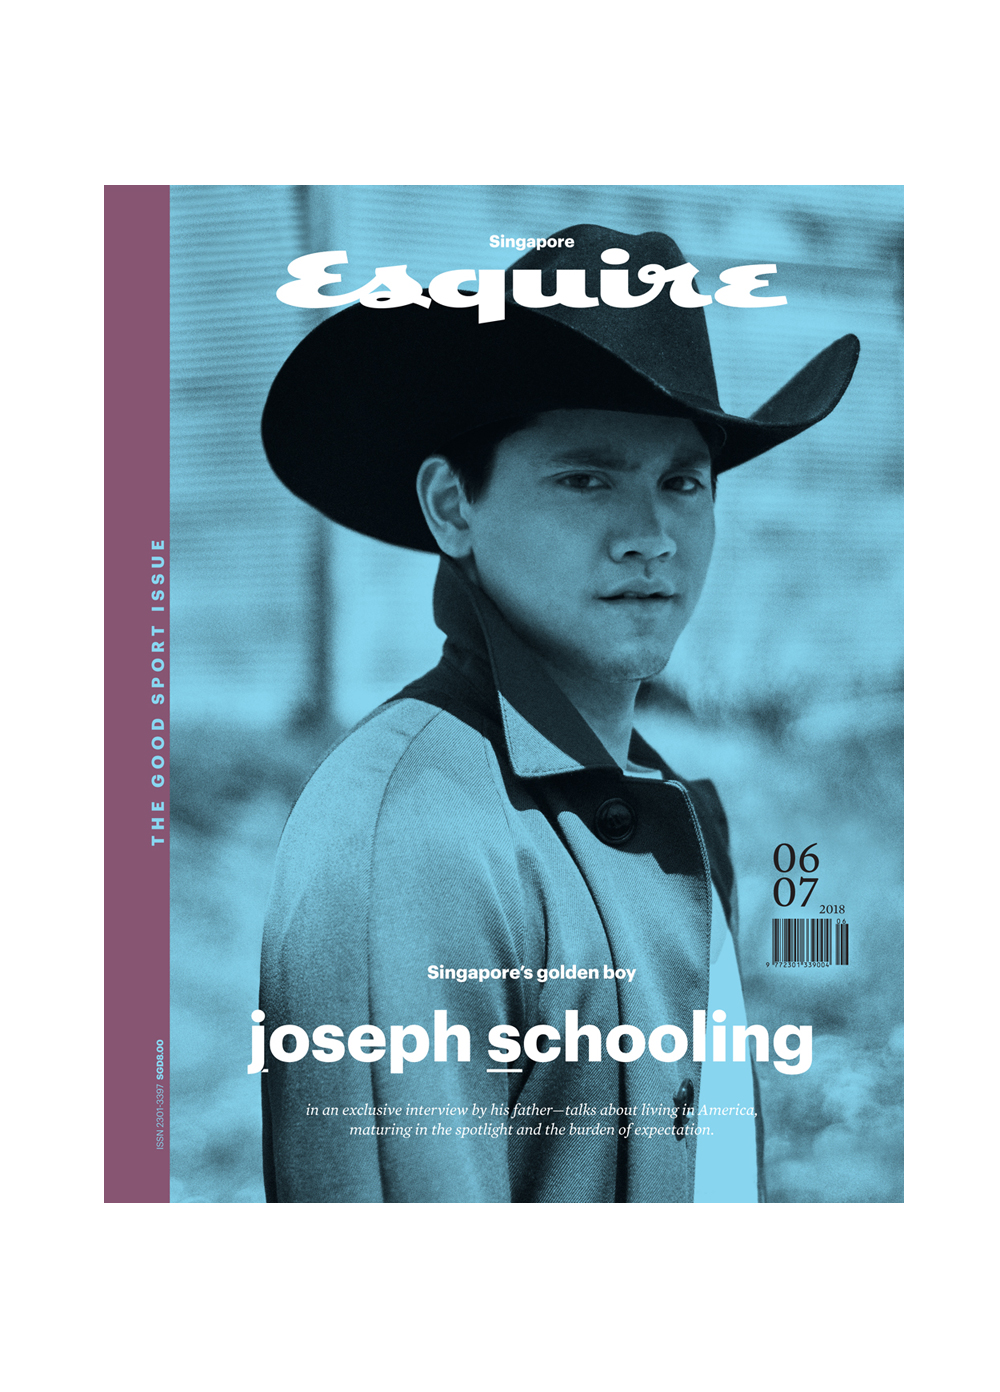 JOSEPH SCHOOLING BY ONIN LORENTE FOR ESQUIRE SINGAPORE